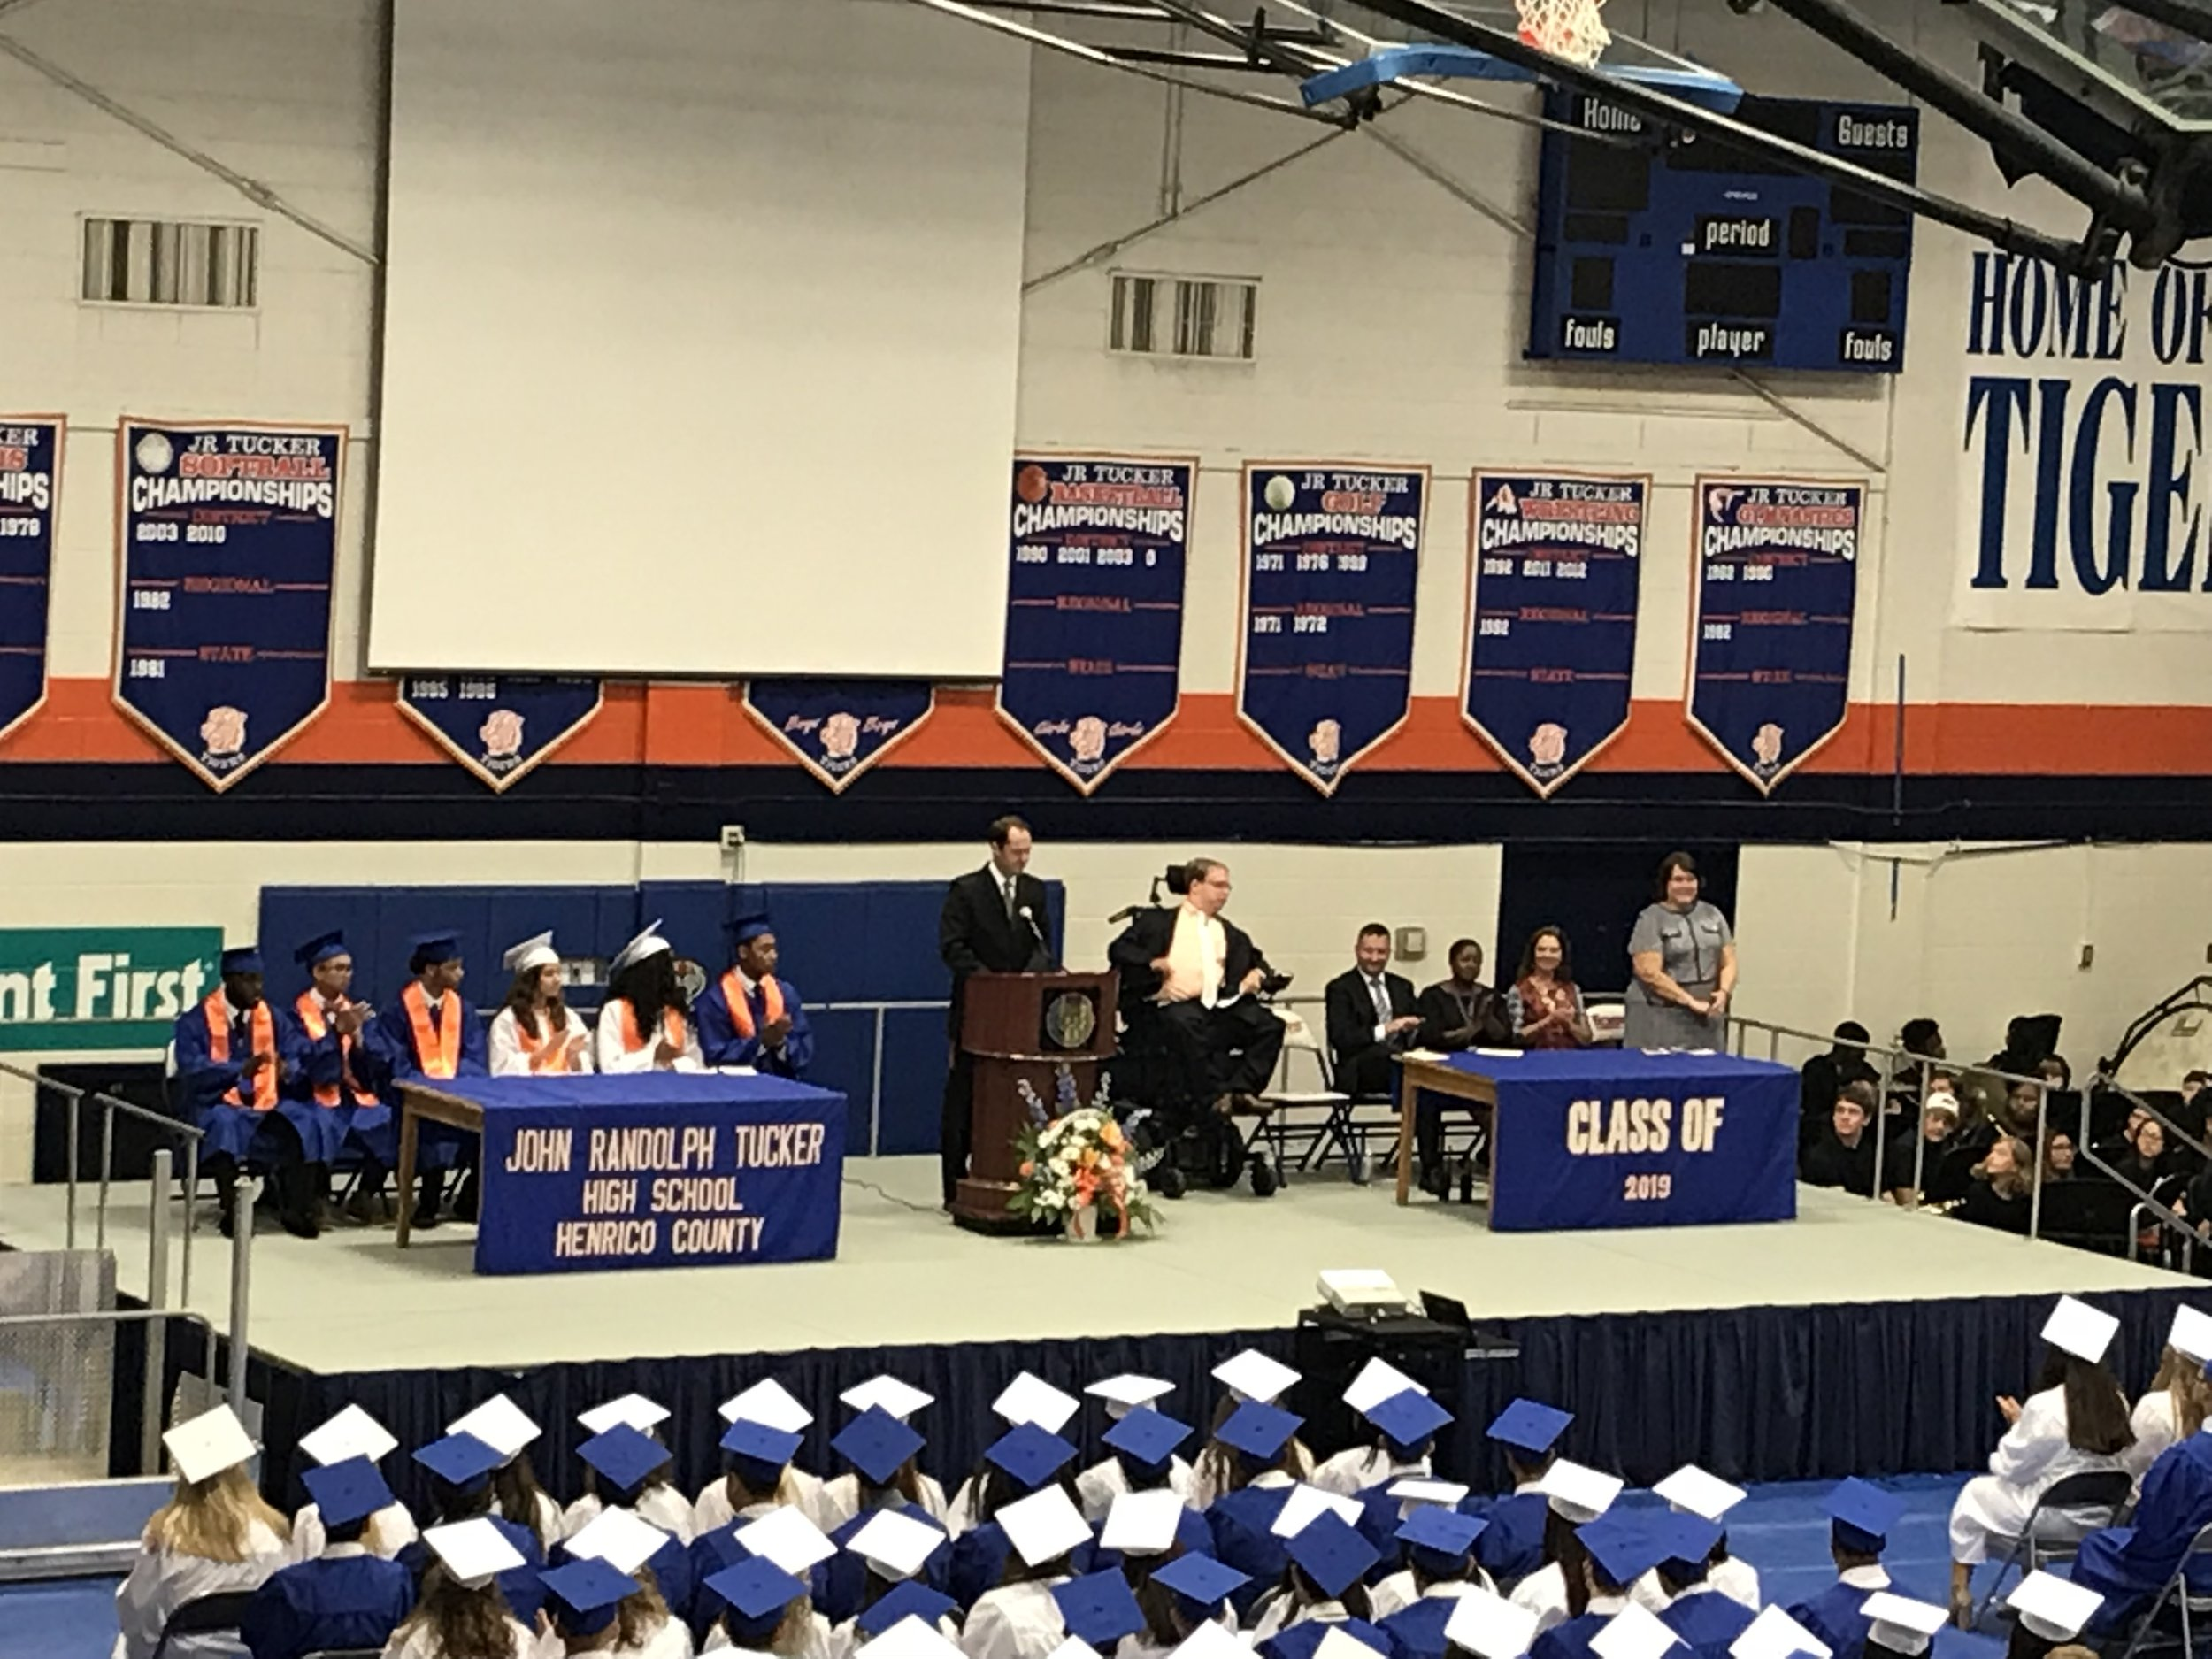 PHOTO: Matthew on stage at his high school, JR Tucker, in front of 2000 people. He was the keynote speaker for the class of 2019 Convocation.